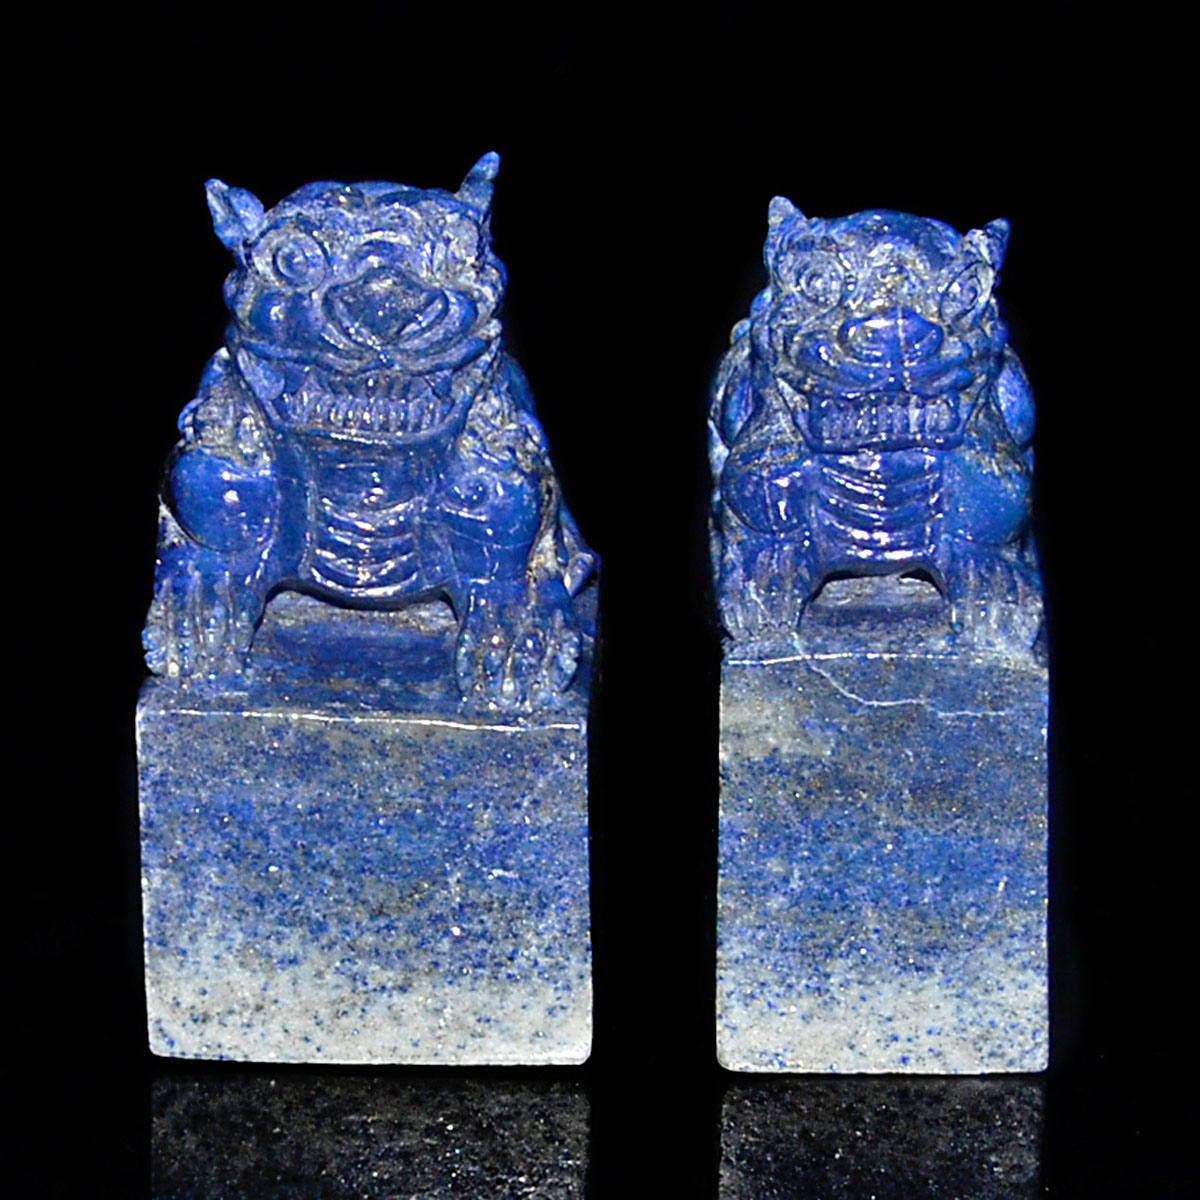 Lot 45 - 青金石獅鈕印料二方 Two Lapis Lazuli Seals Carved with Lion Knob. Height: 3⅝ in (9.2 cm), 3¾ in (9.5 cm)